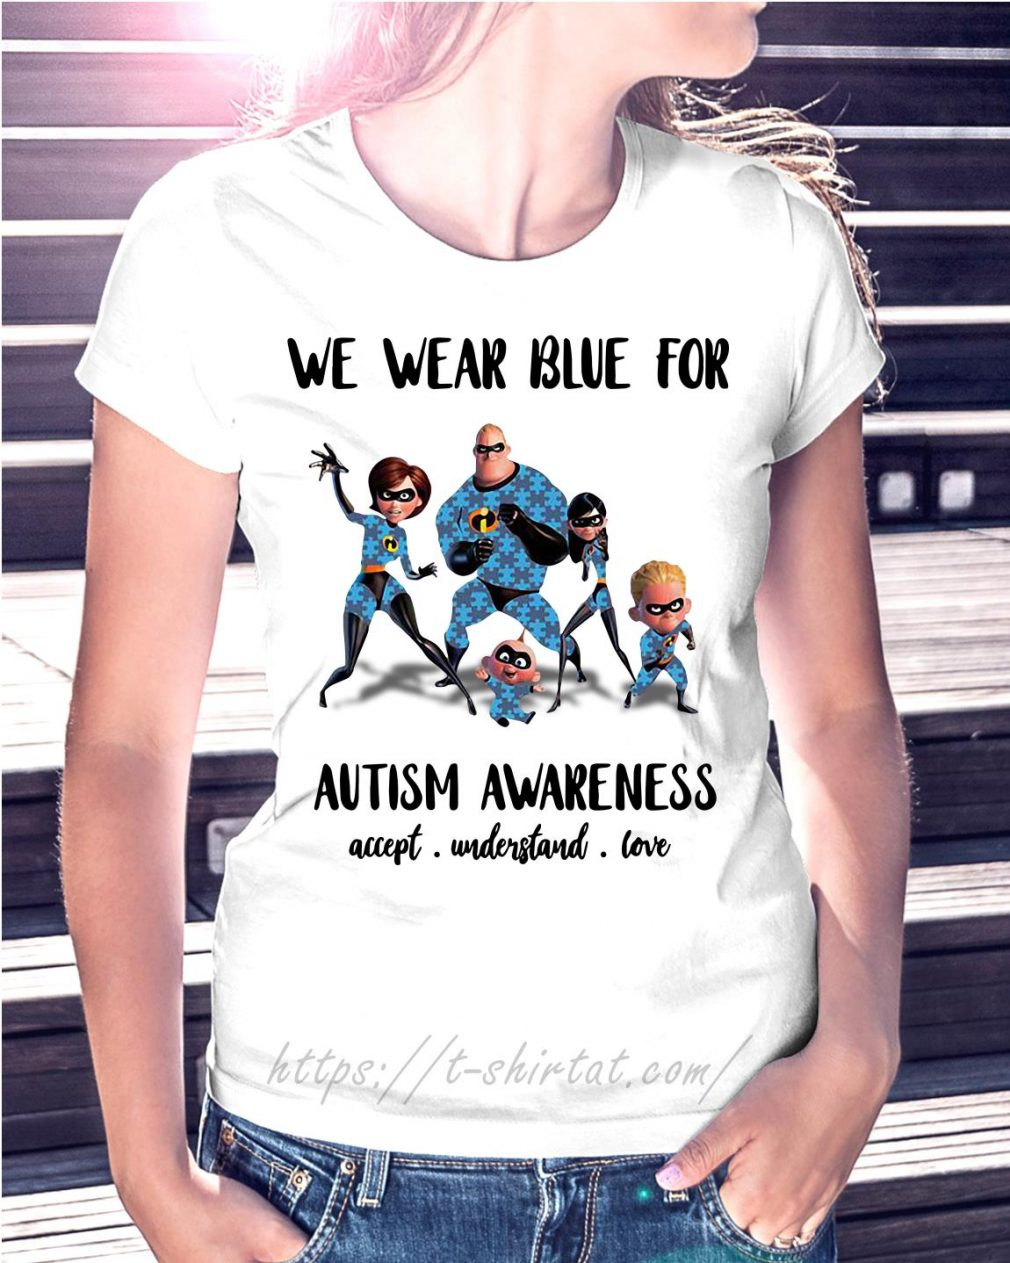 Incredible family we wear blue for Autism awareness accept understand love